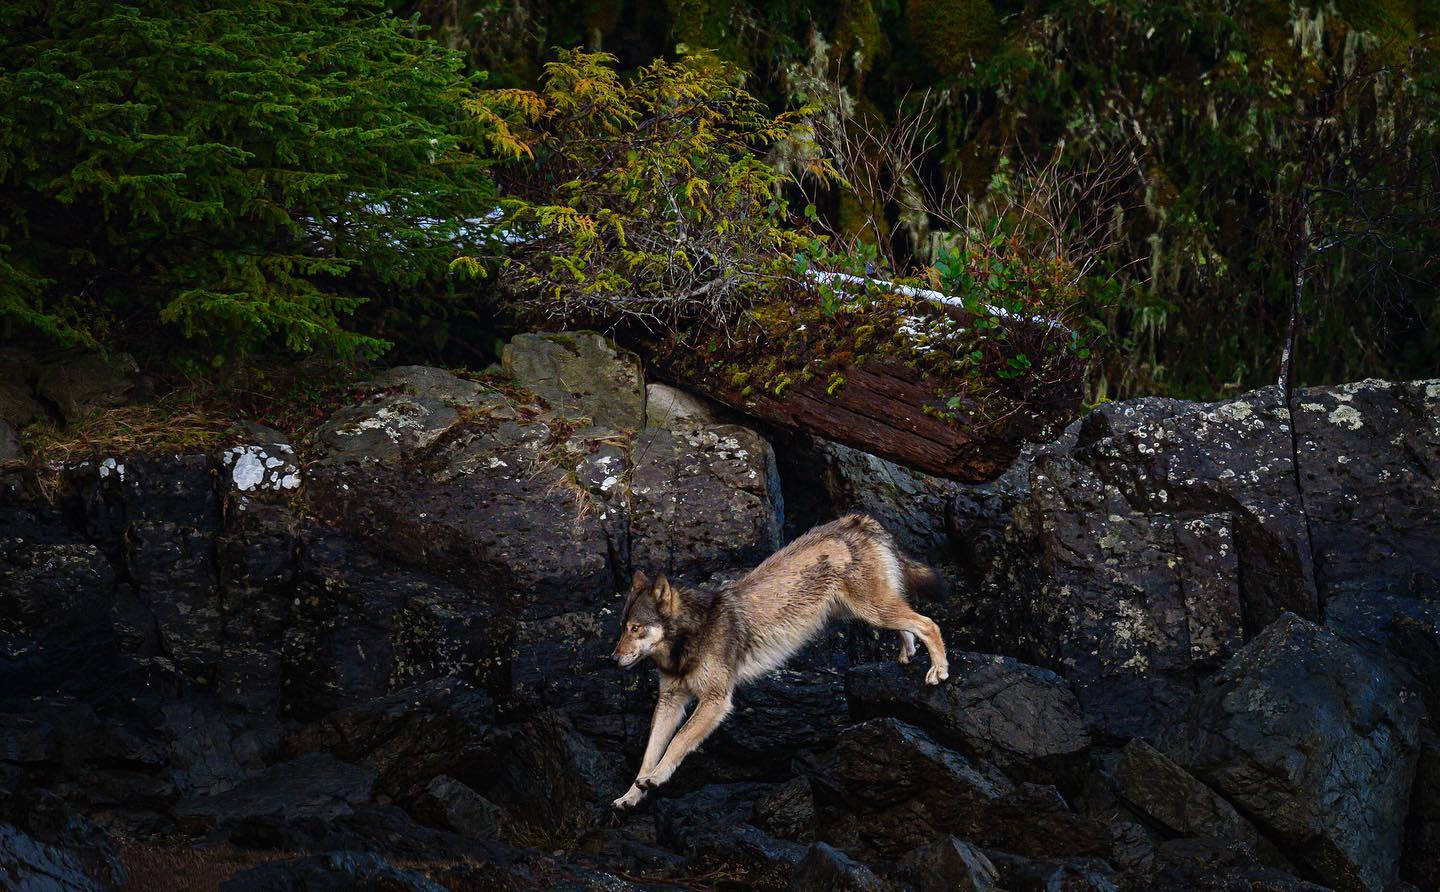 Brown wolf caught in action running down rocks